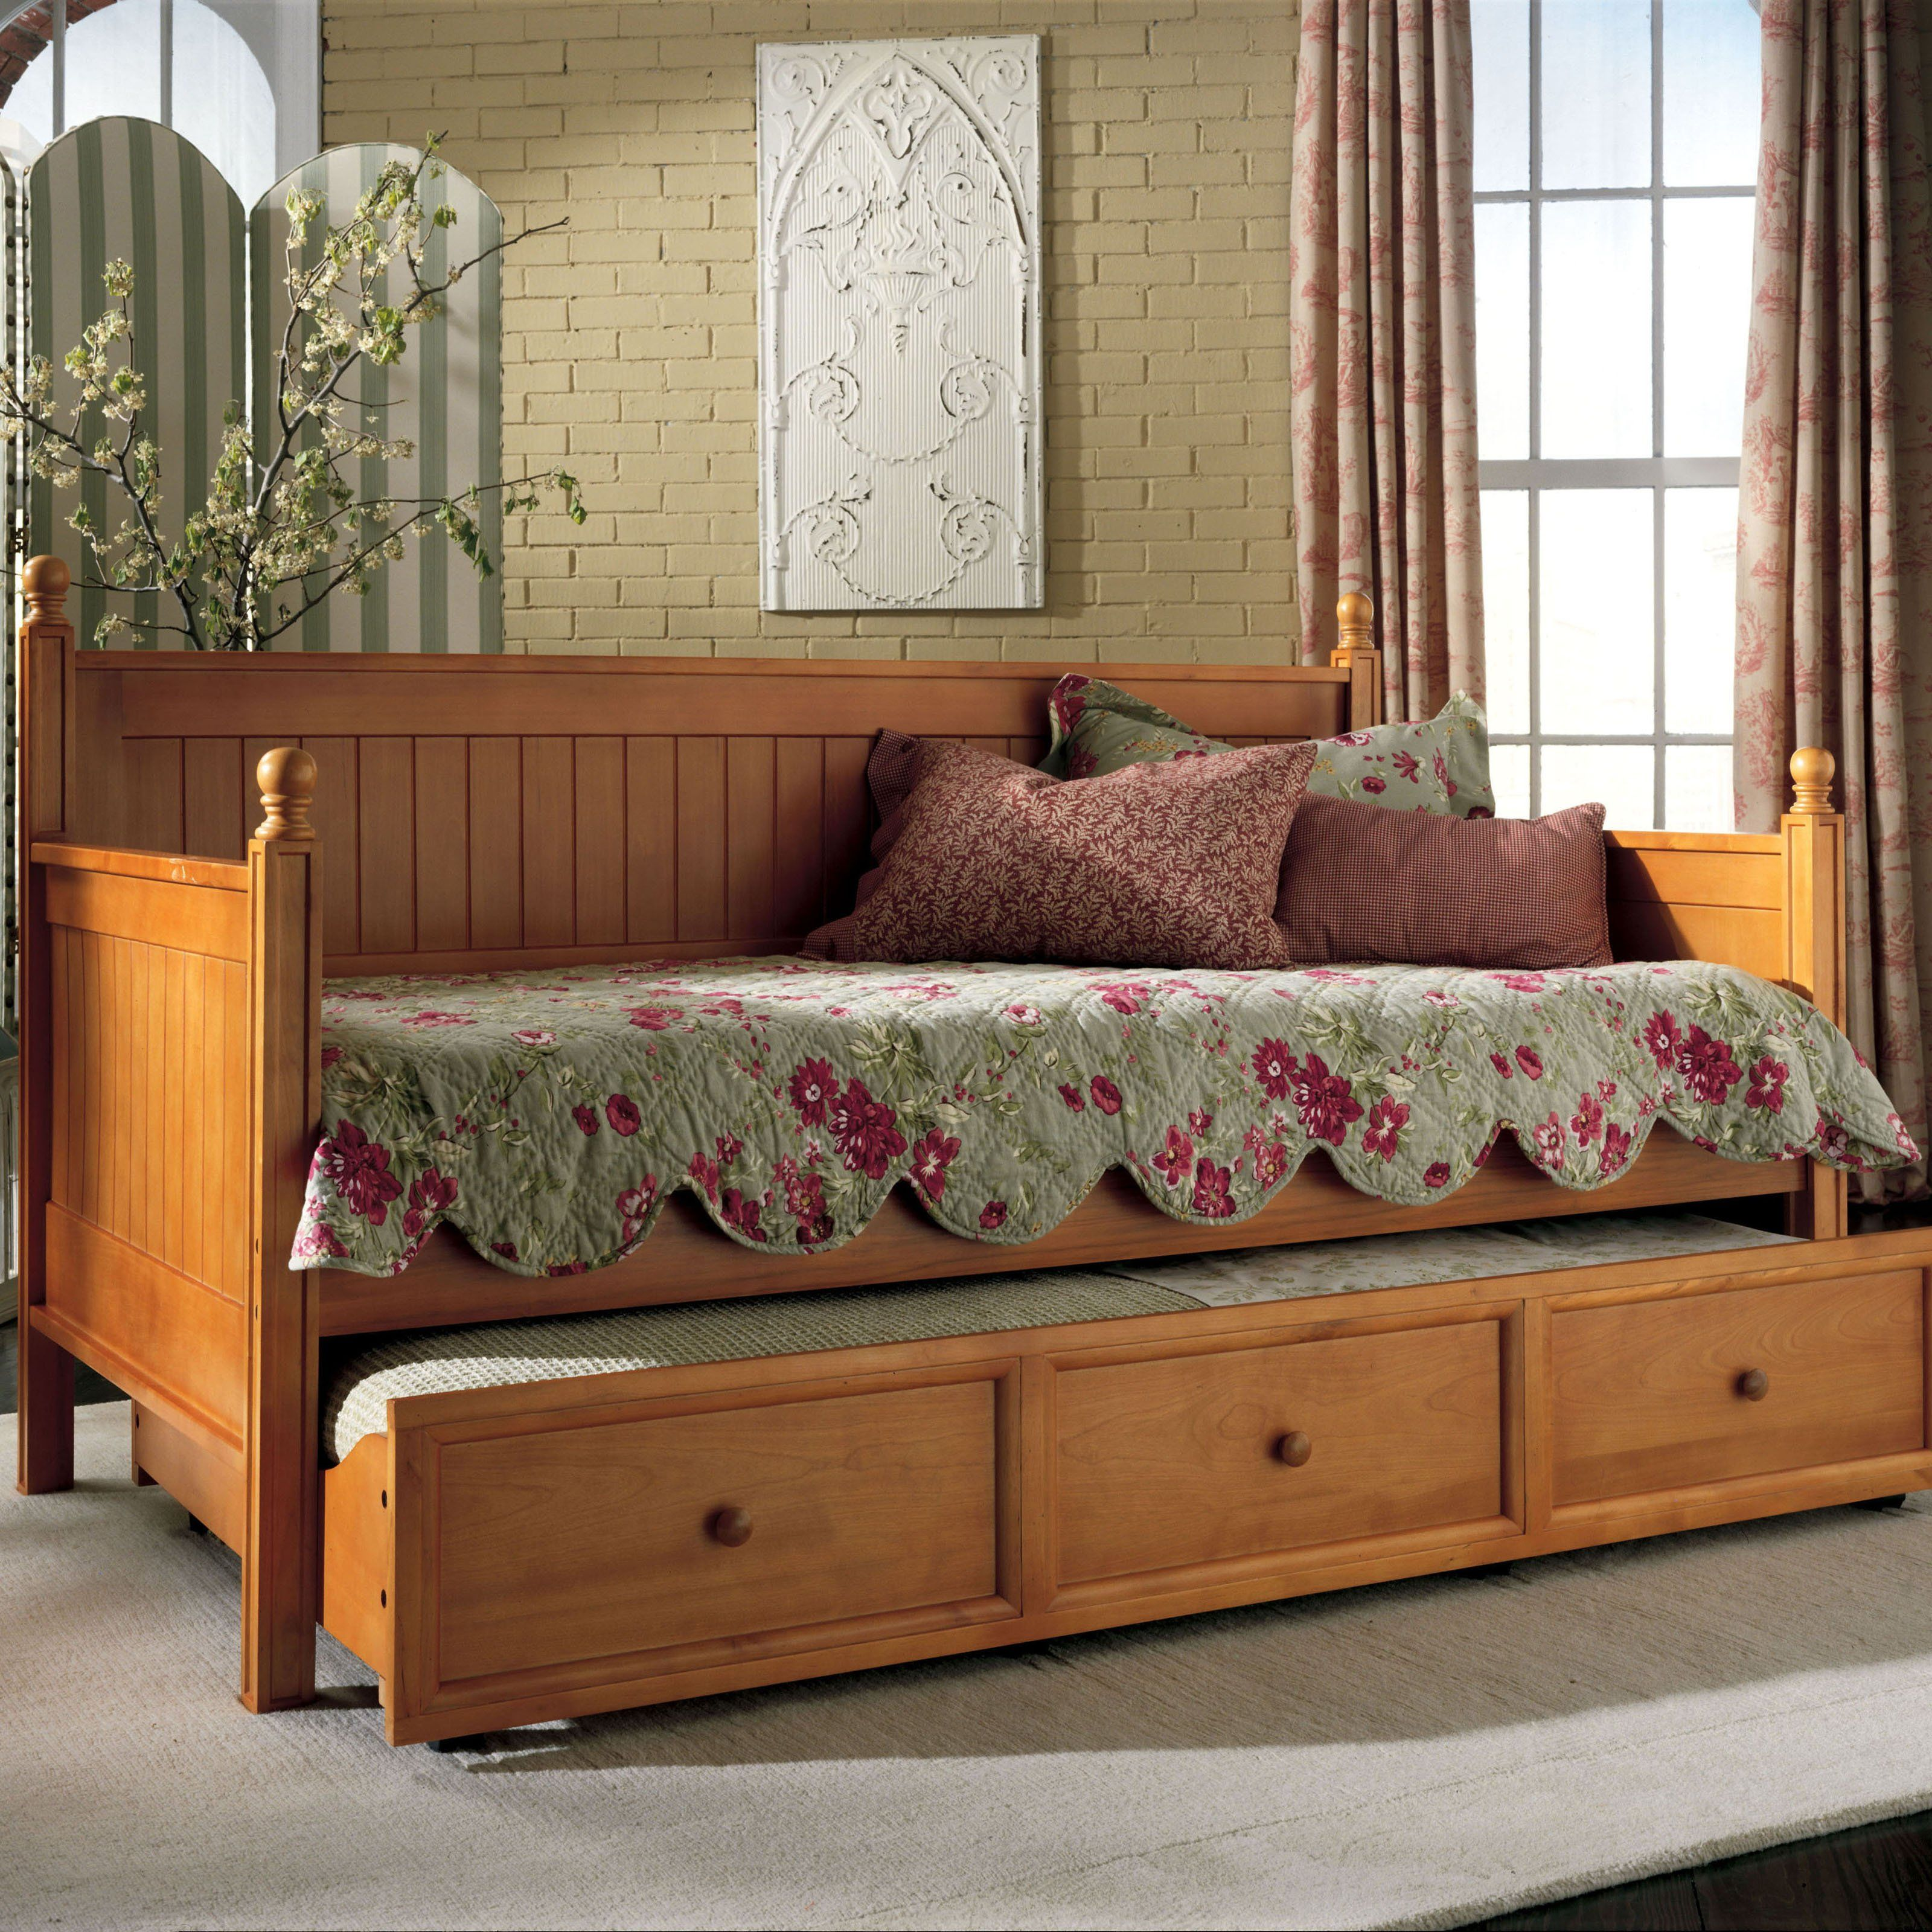 Casey Daybed Honey Maple 267.01 Bed styling, Wood